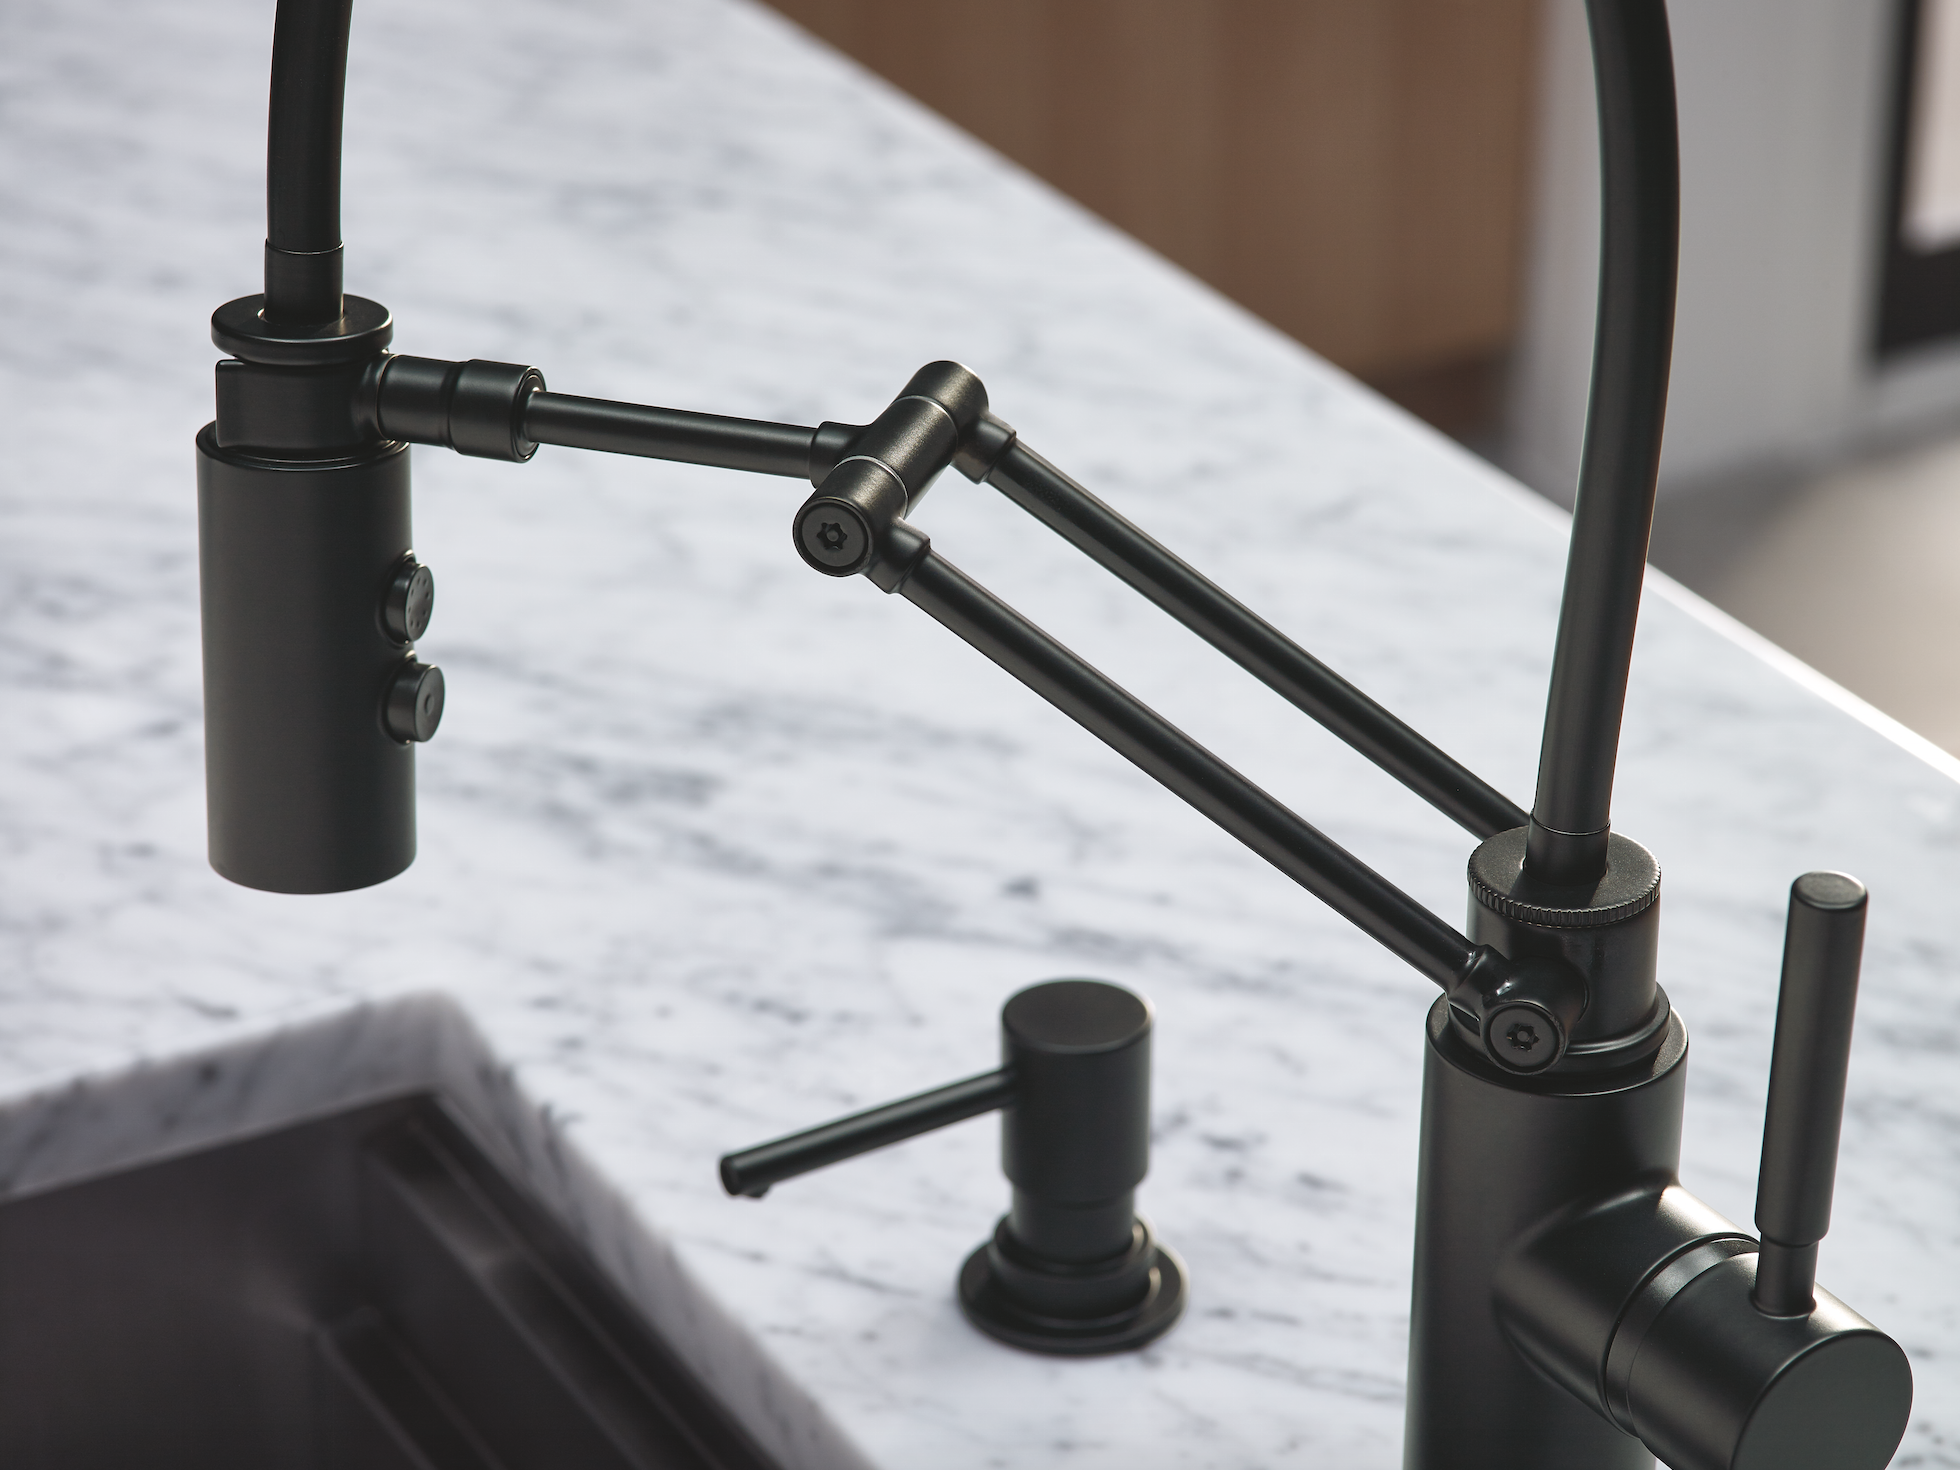 kitchen spaces black faucet for kitchen The Solna Articulating Kitchen Faucet by Brizo in matte black was the hero in this modern kitchen space designed by